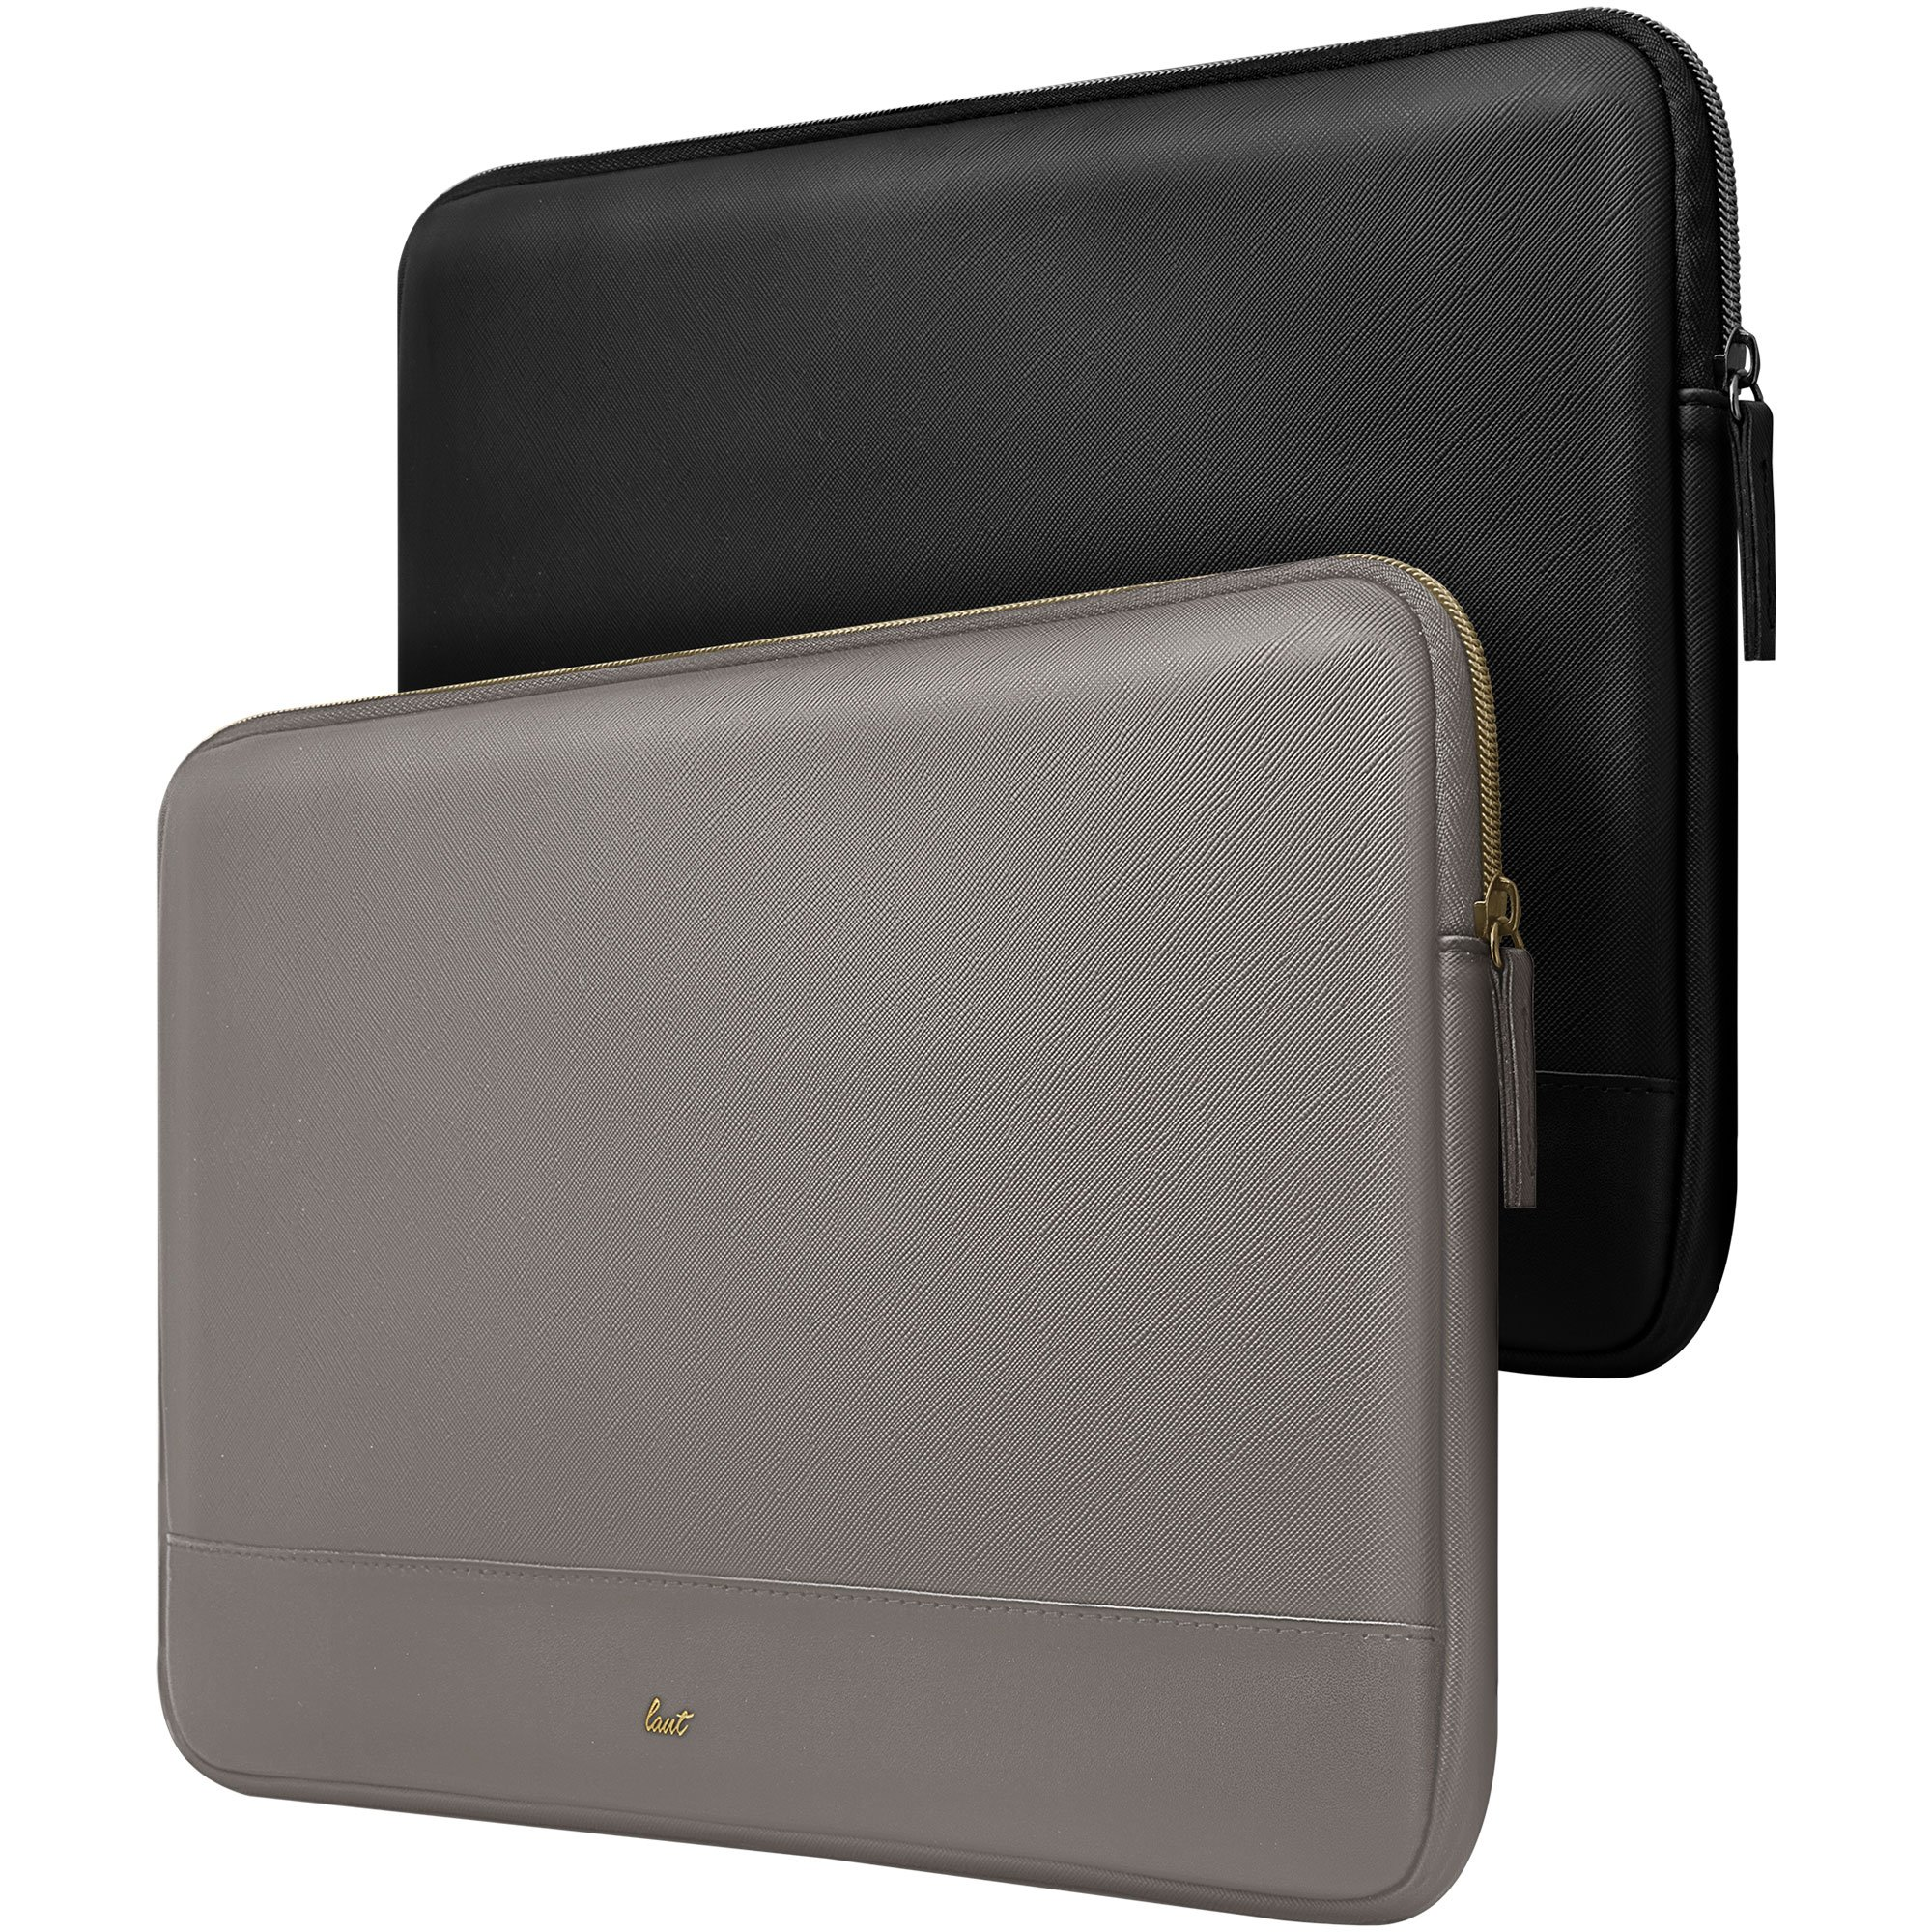 Túi Chống Sốc PRESTIGE Protective Sleeve For MacBook 16-inch